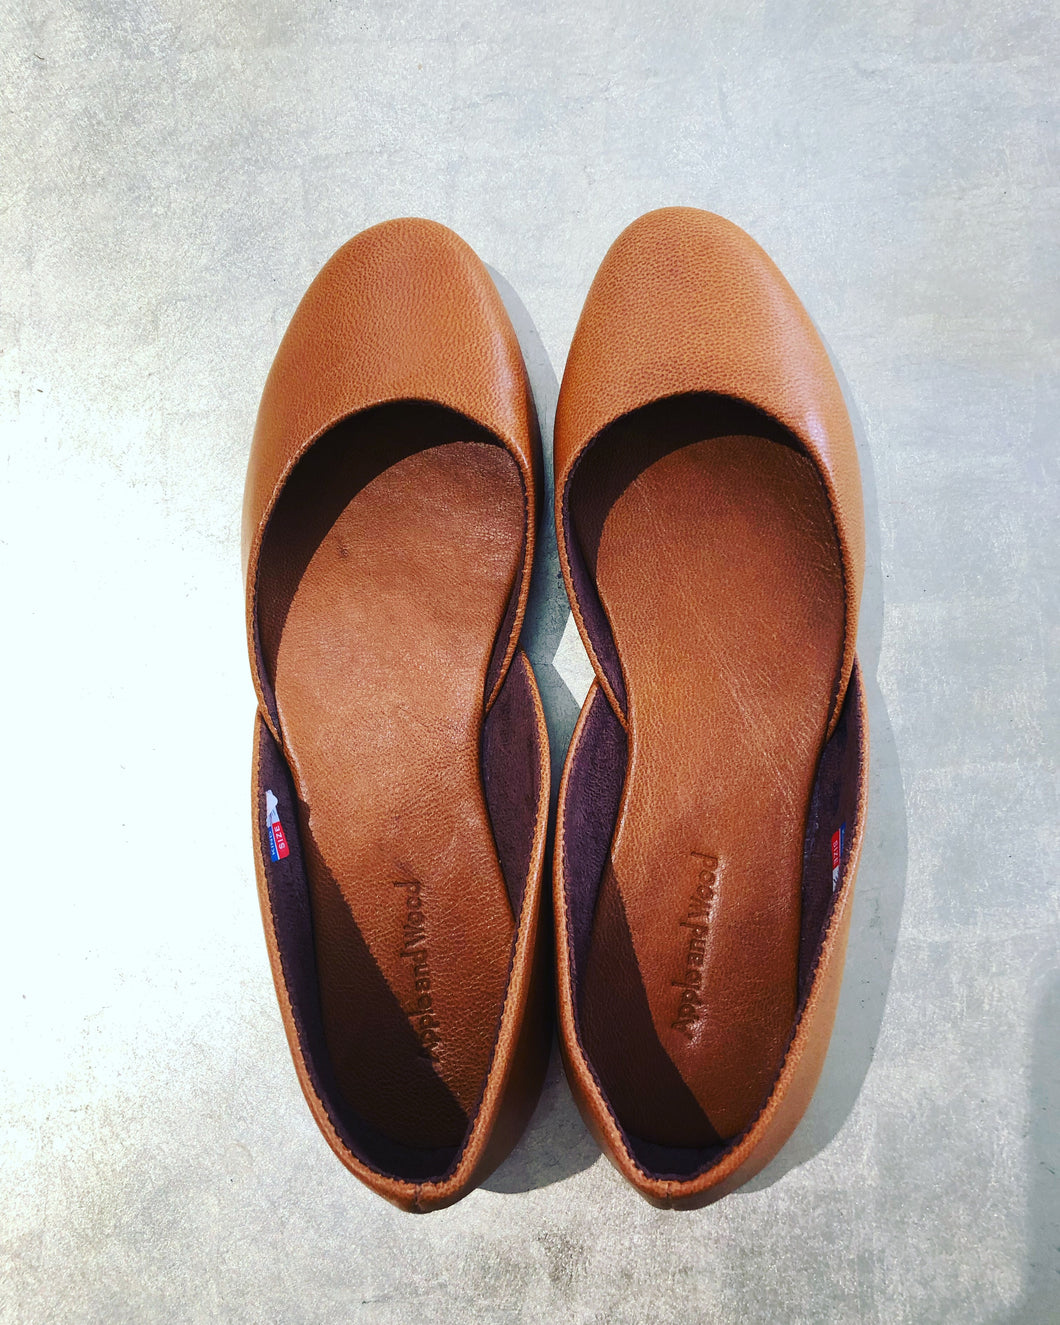 Miette ballet flats in darling pea